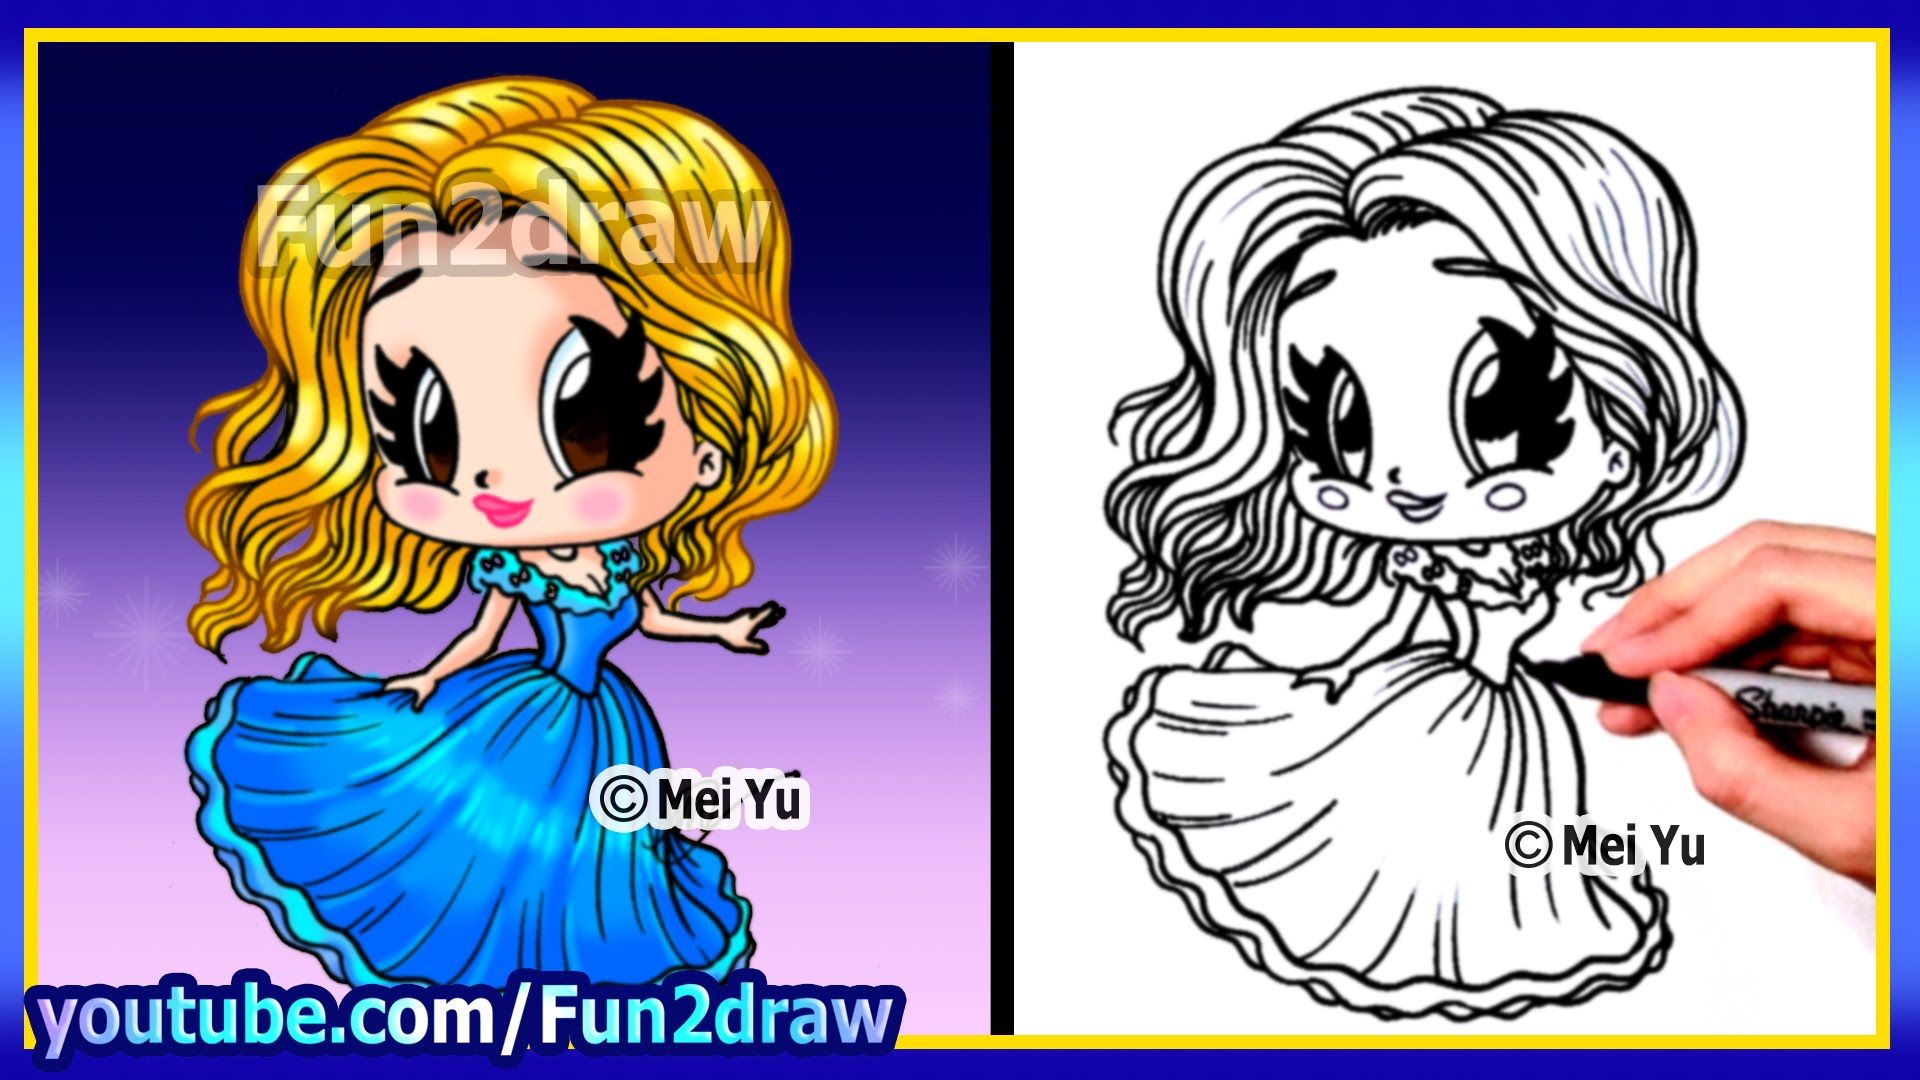 How to draw a cinderella princess fun2draw this artist for Fun to draw people